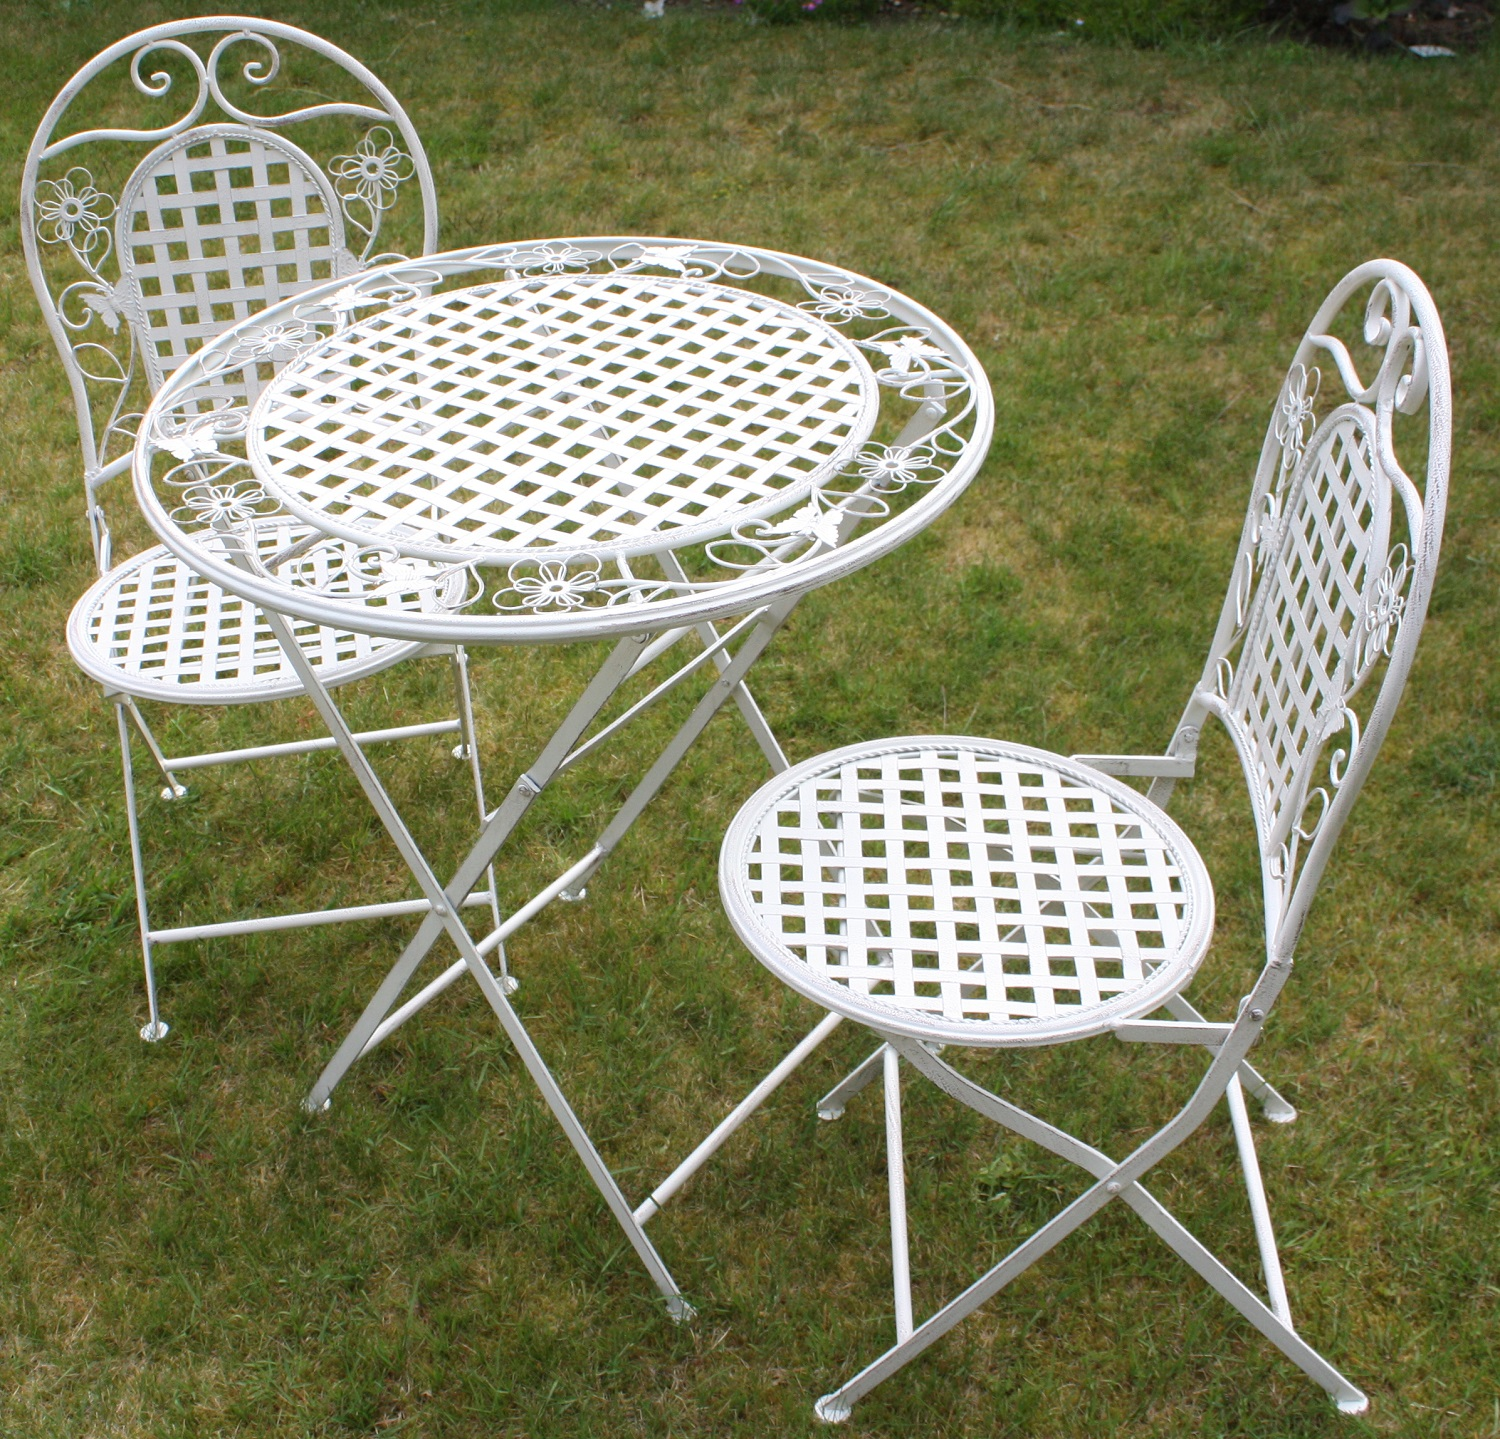 White Floral Outdoor Folding Metal Round Table And Chairs Garden